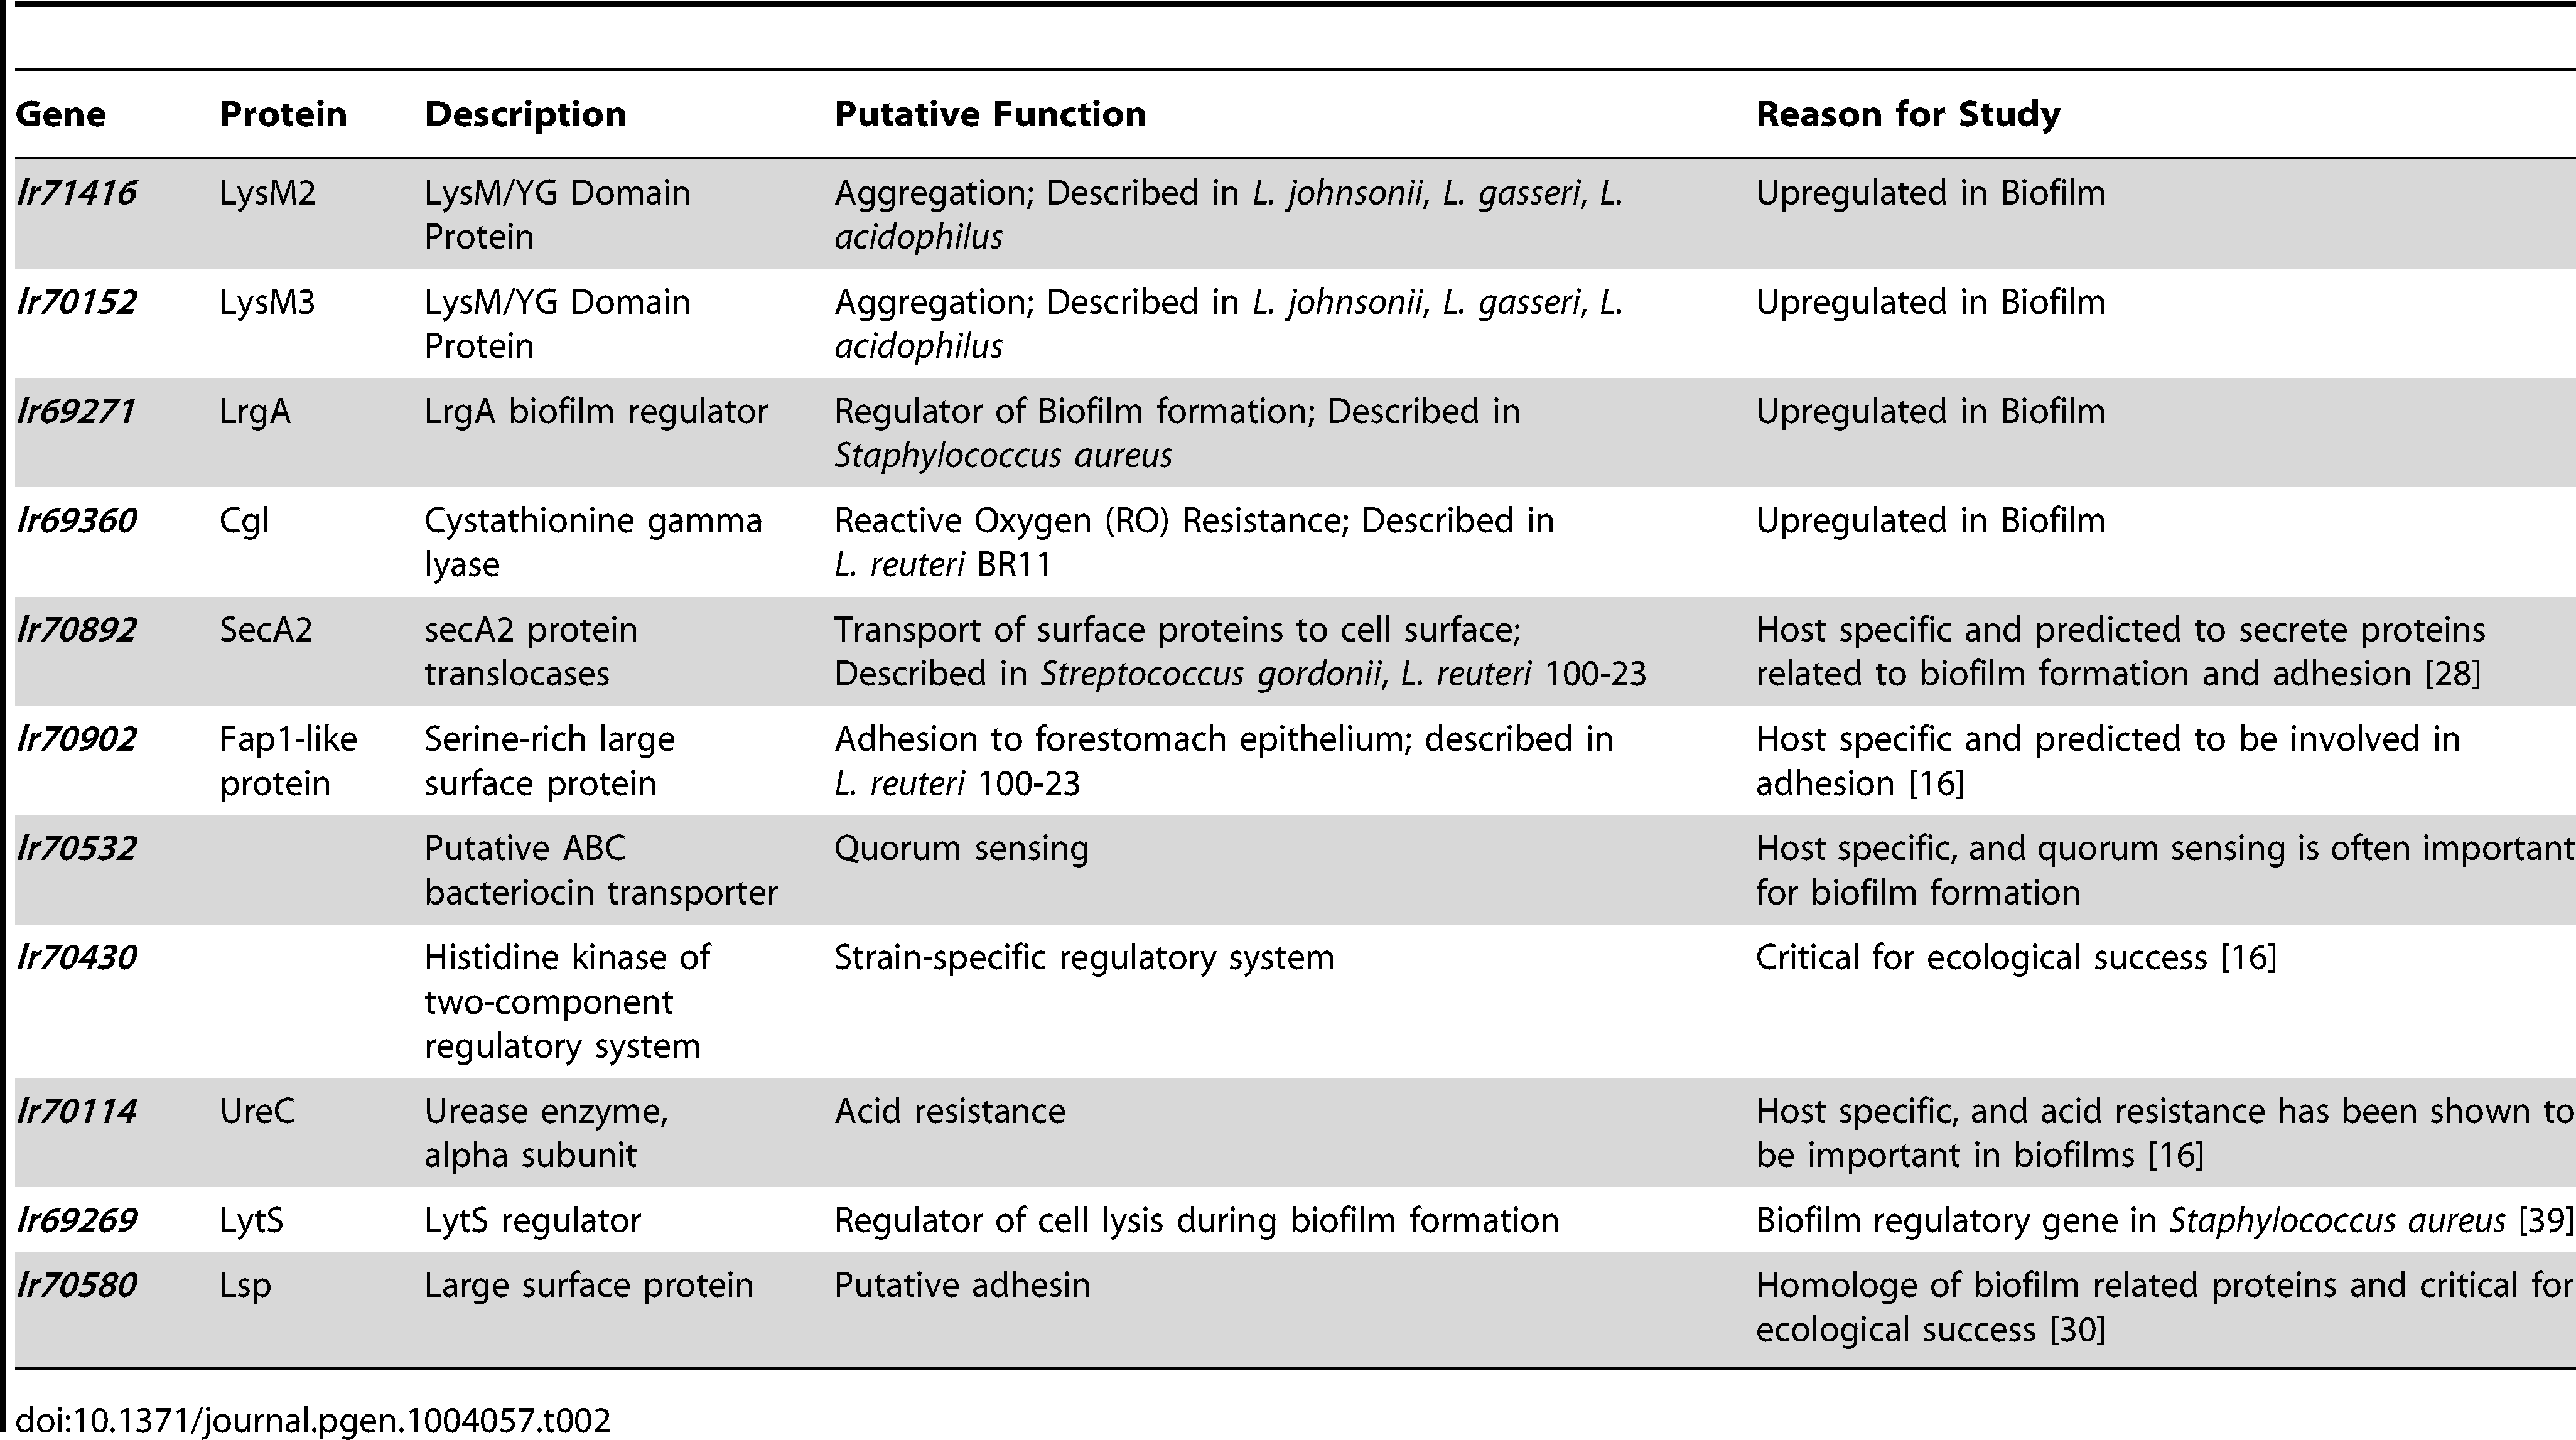 Genes of <i>L. reuteri</i> 100-23 selected for functional characterization.